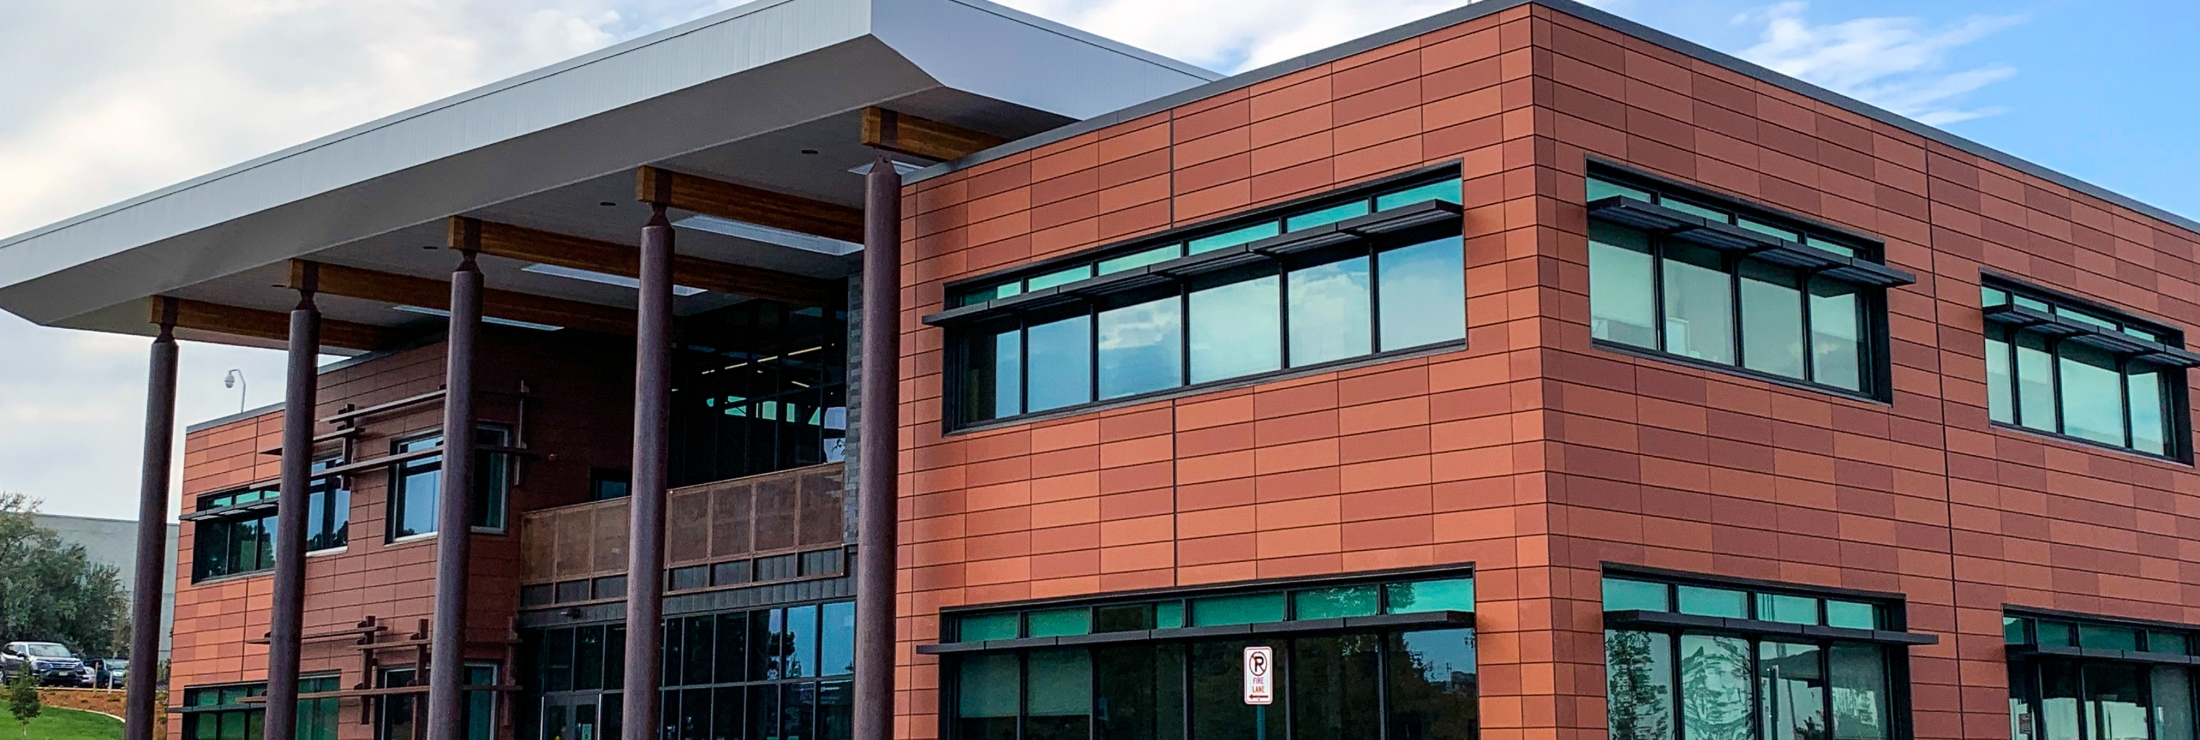 Cladding Corp Terra5 Terracotta Rainscreen & ECO Cladding Hci.22 Subframing Cladding System